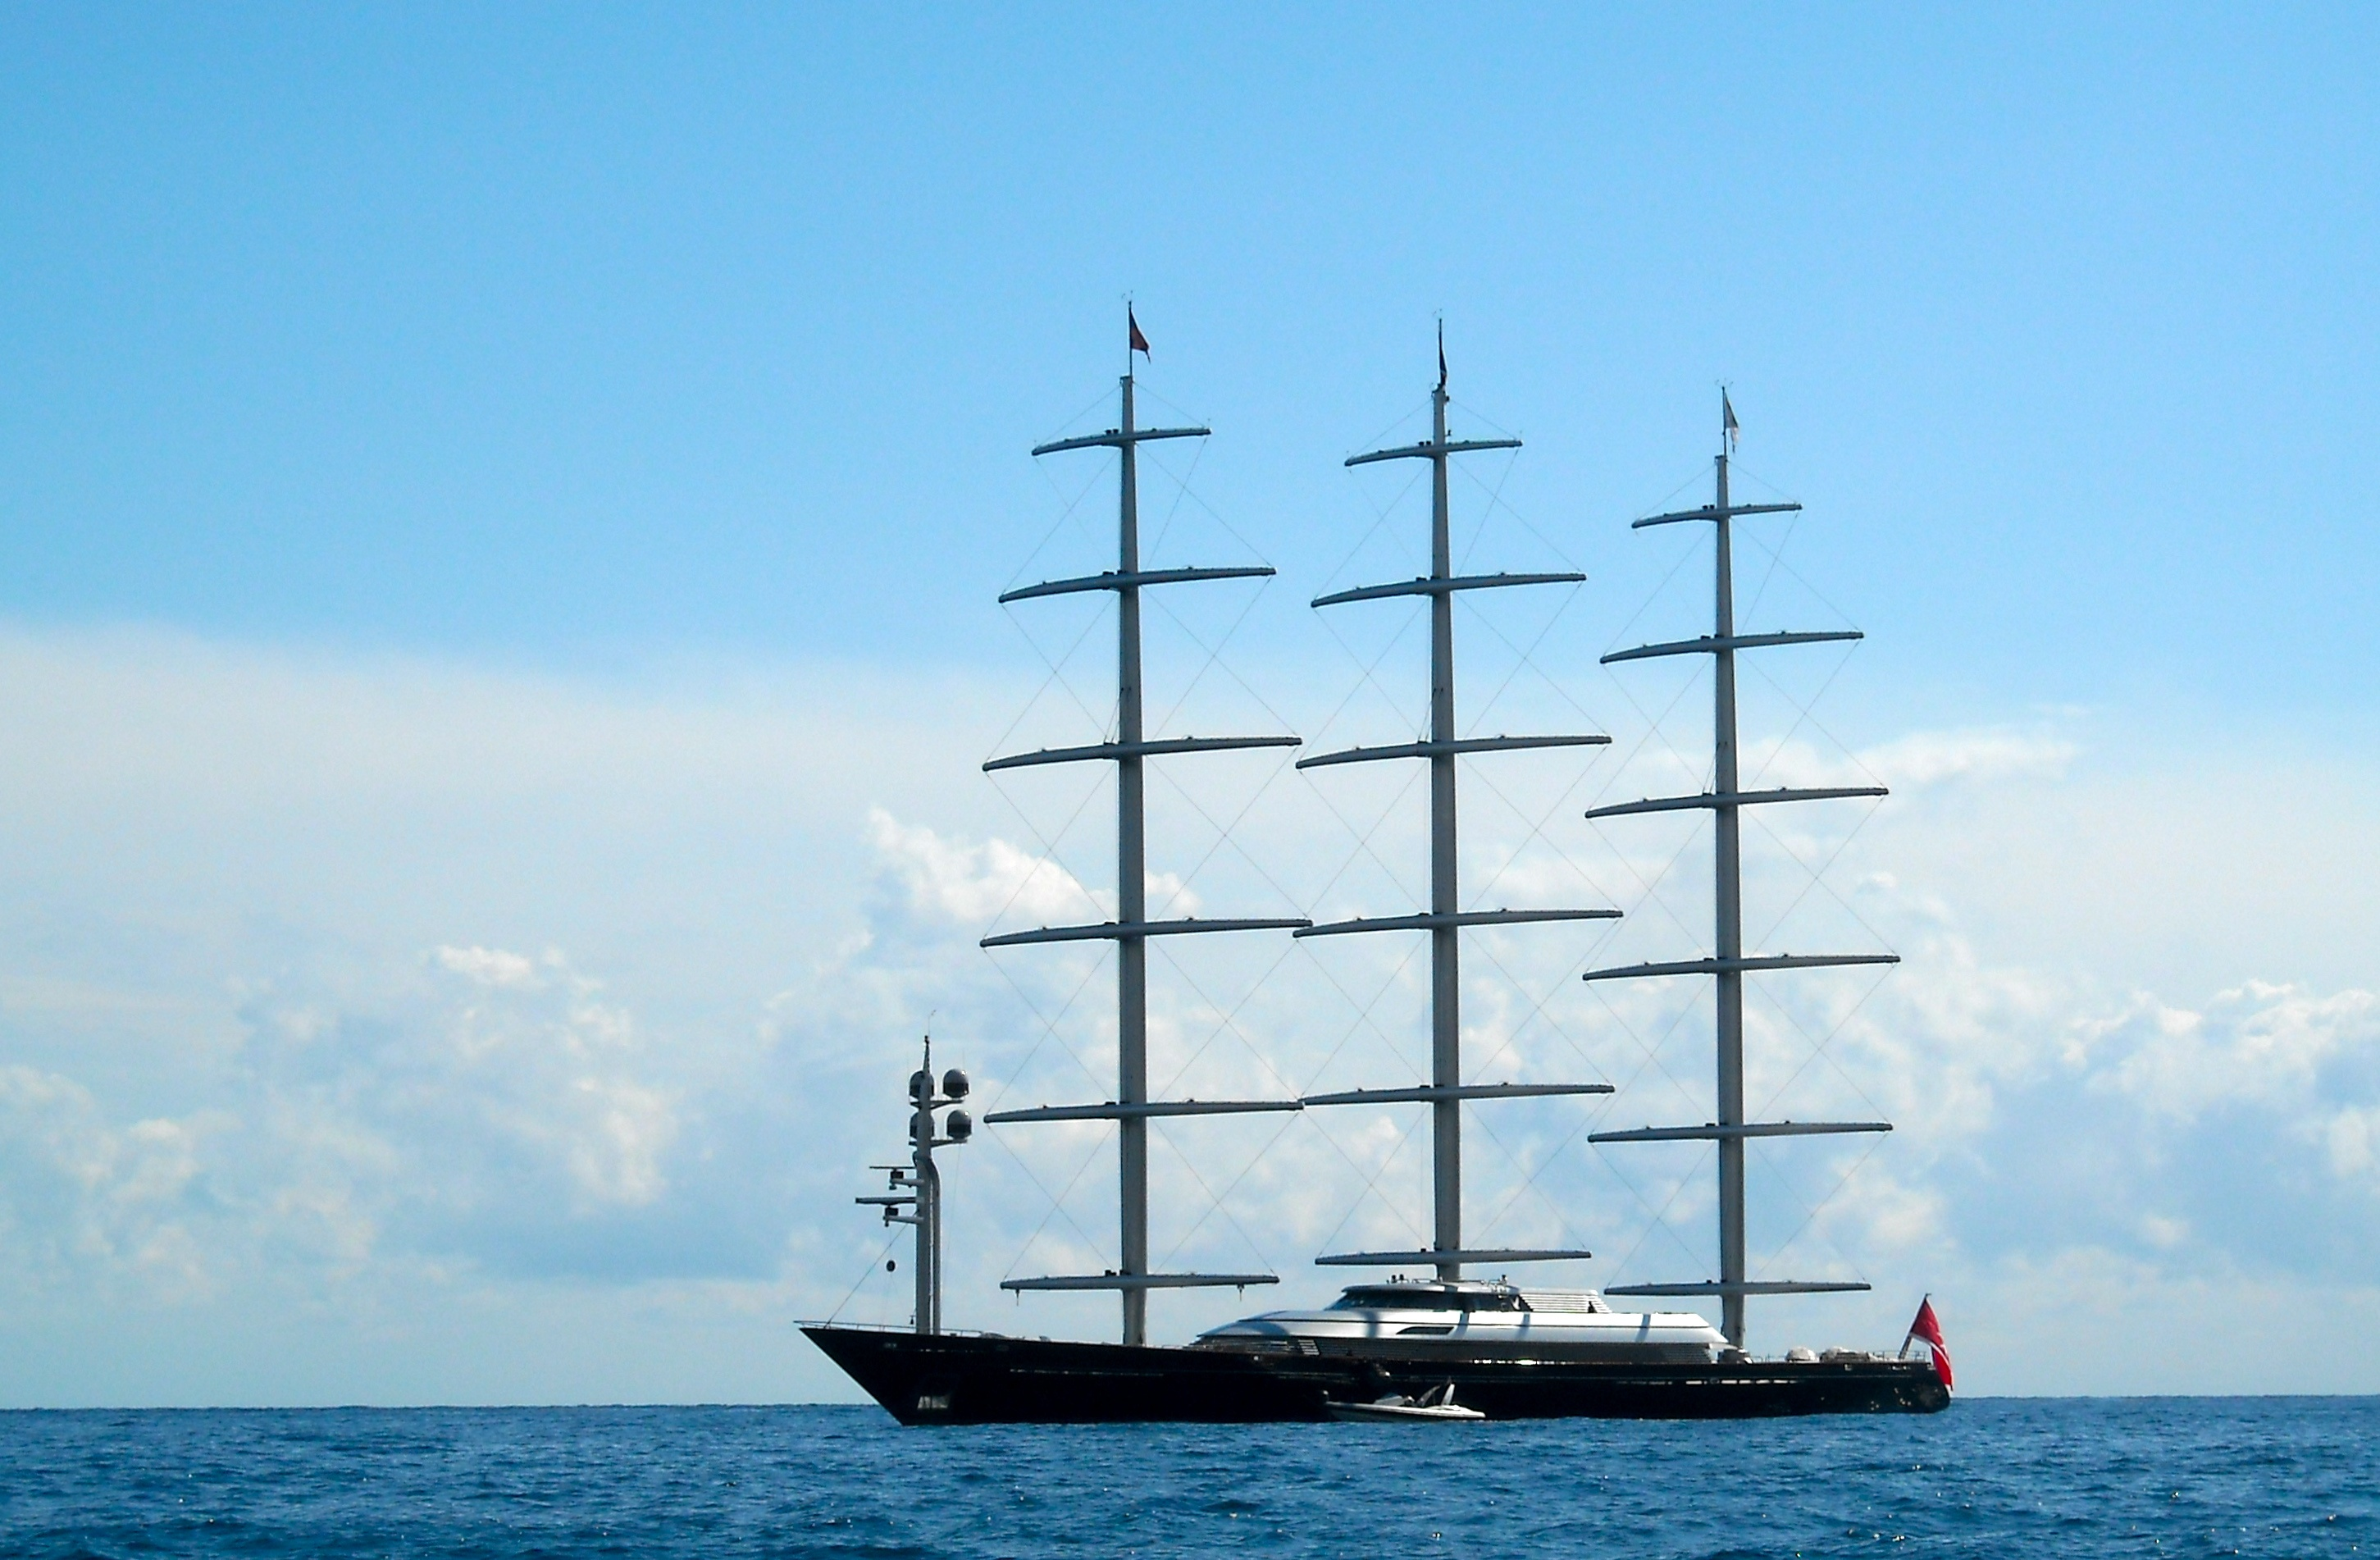 Maltese Falcon (yacht) - Wikipedia